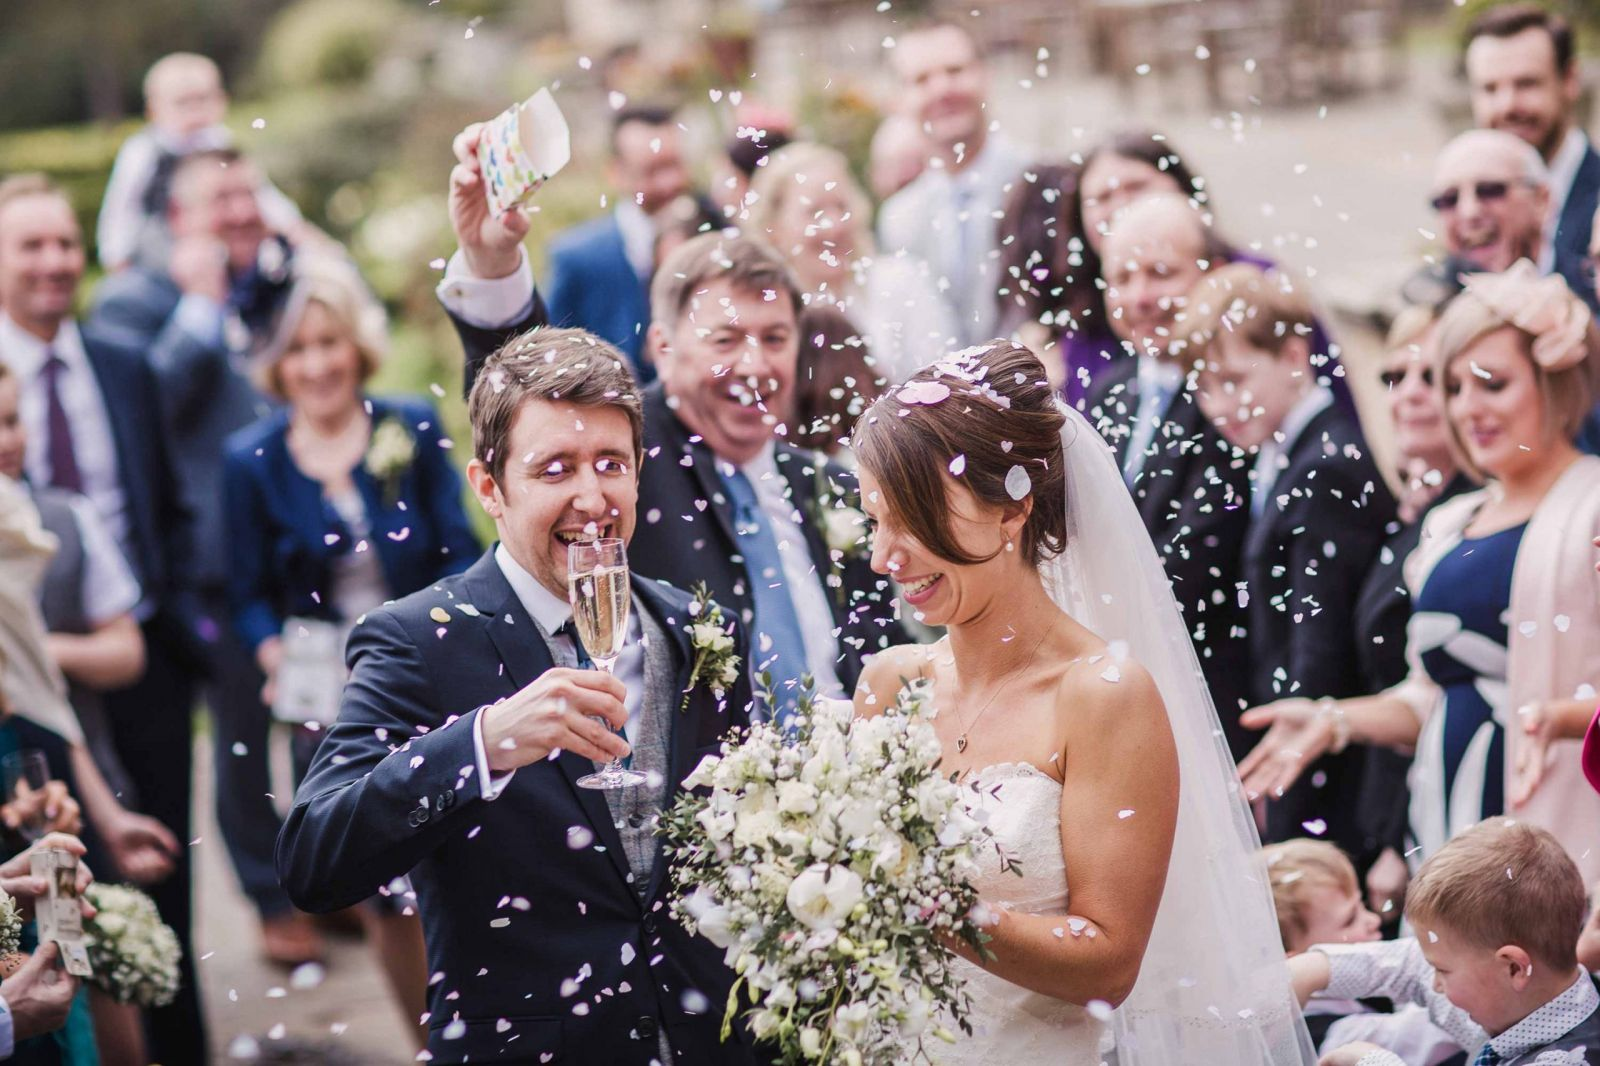 father of the bride throws confetti over bride and groom